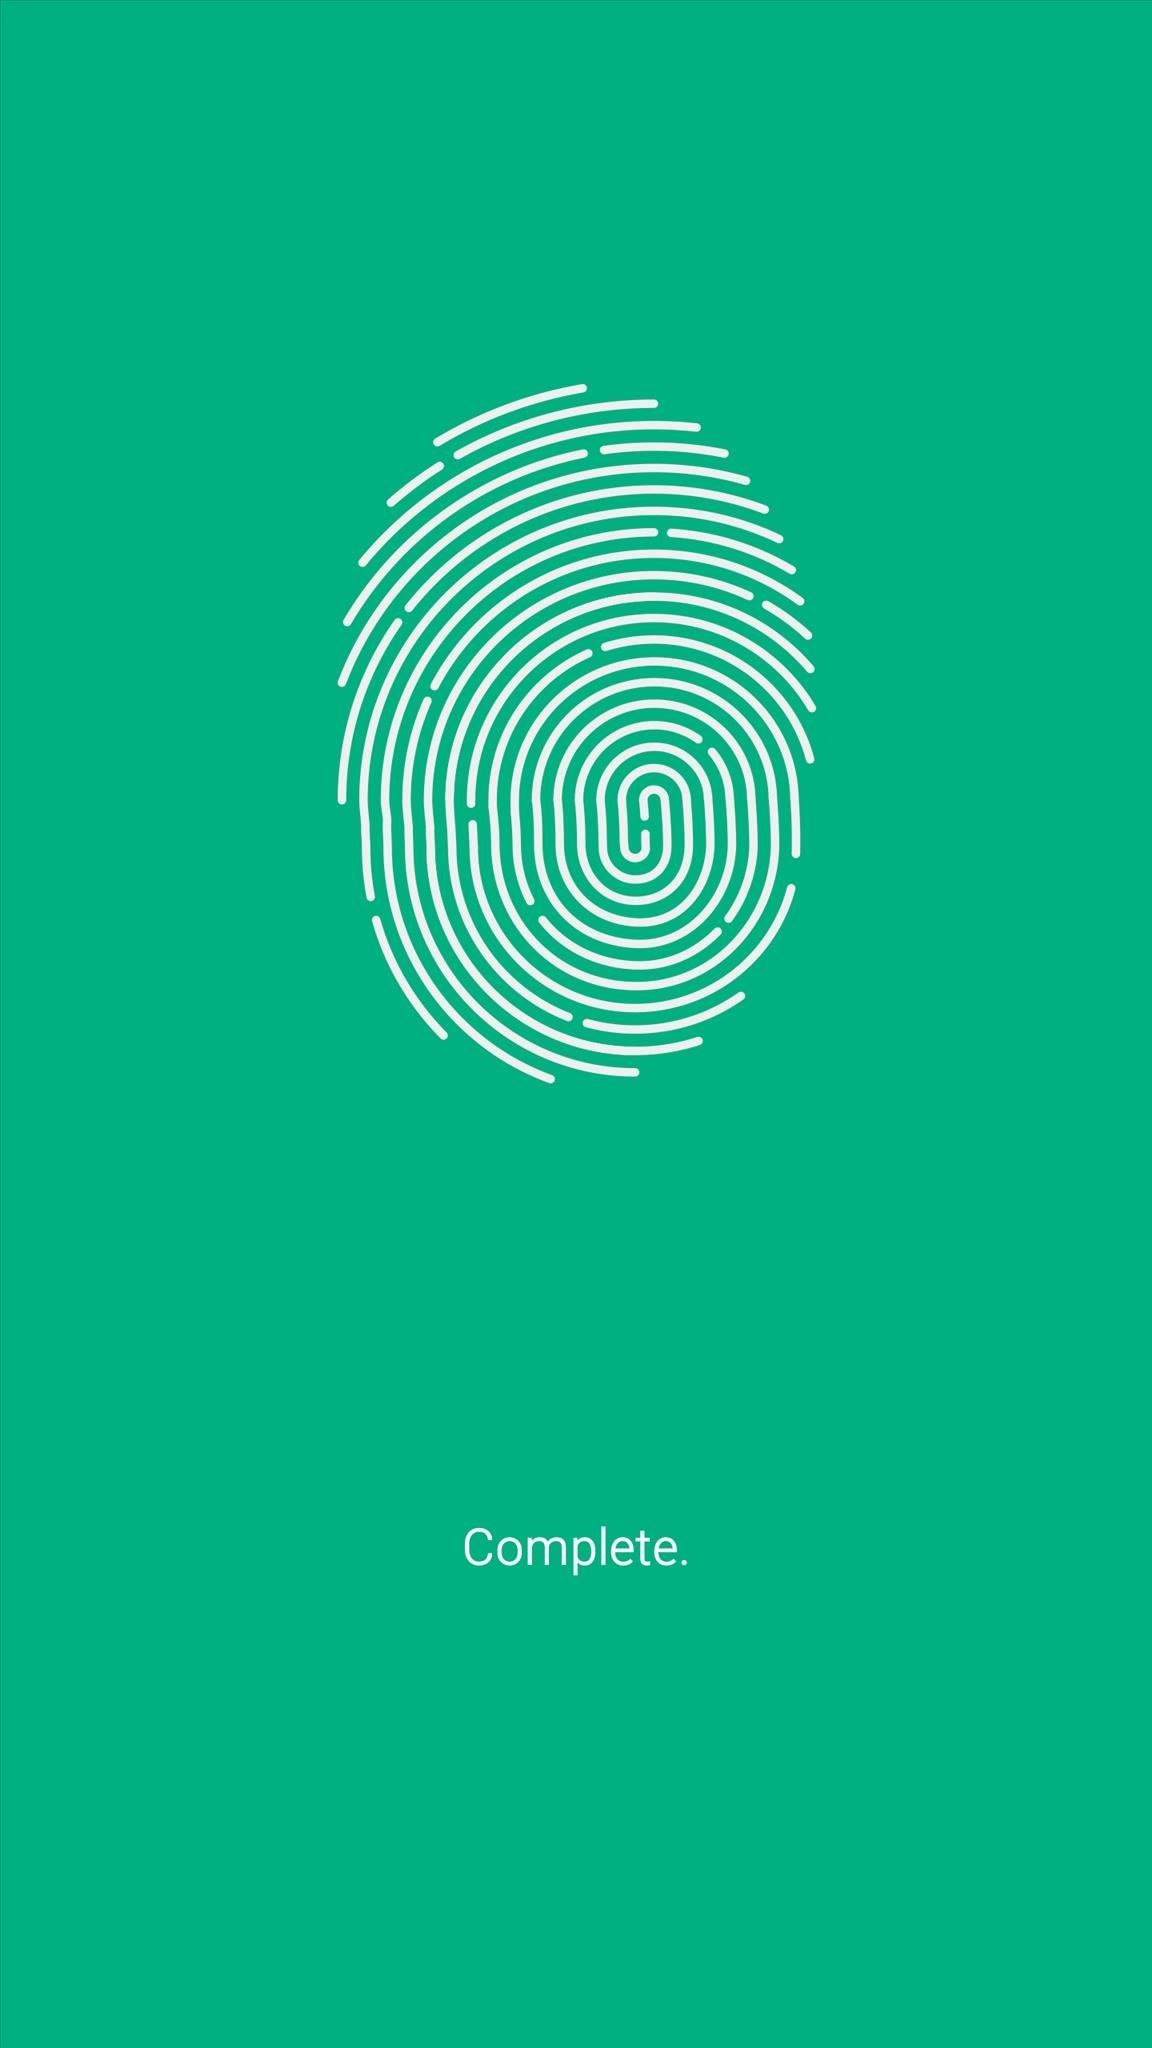 Fingerprint Scanner Wallpaper | www.pixshark.com - Images ...